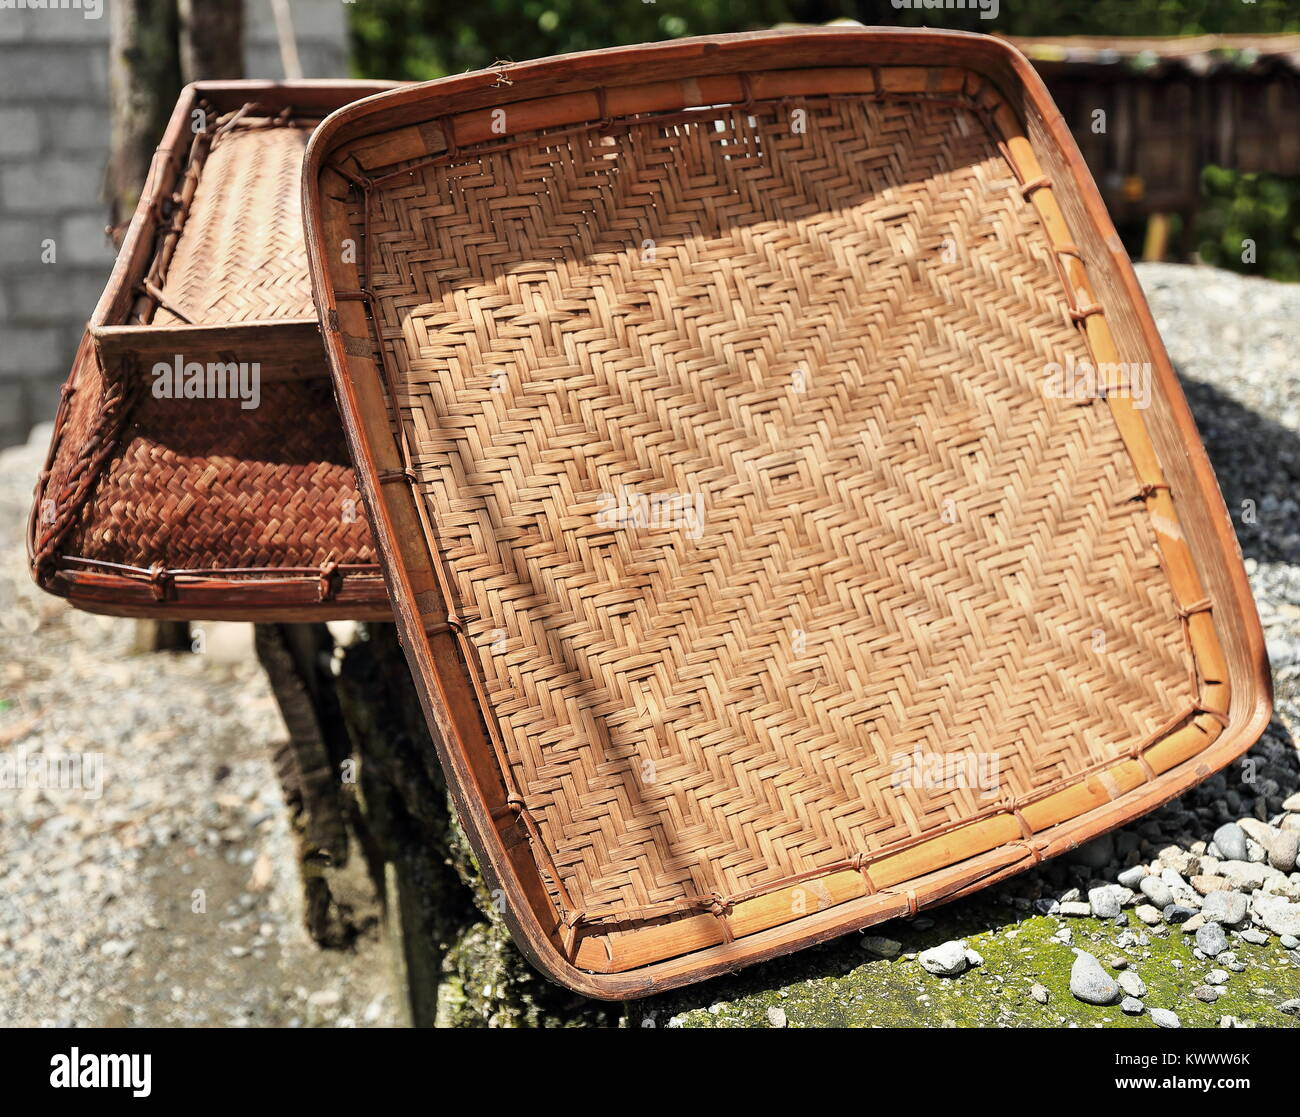 Woven Wicker And Bamboo Trays Placed In The Sun On The Pebble Covered Stock Photo Alamy